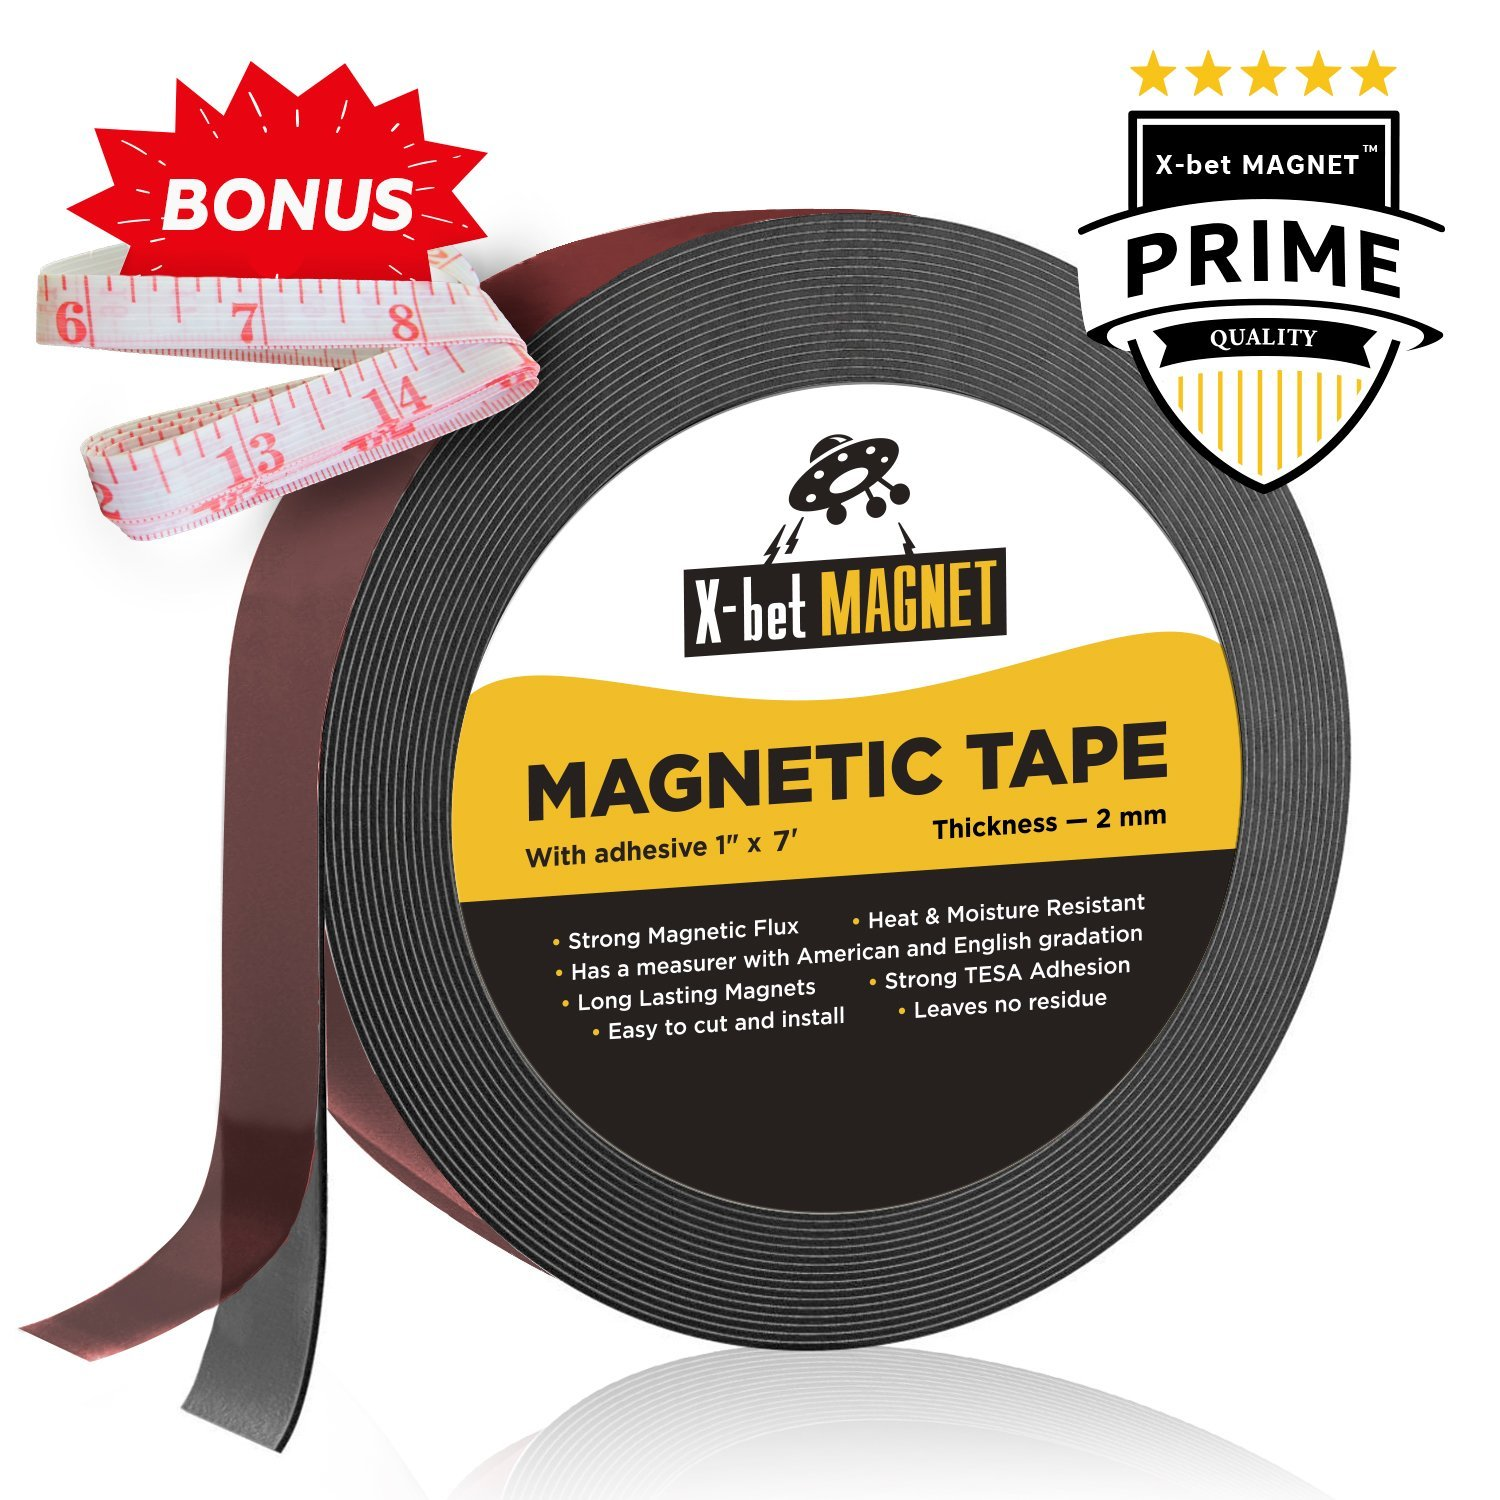 Flexible Magnetic Strip - 1 Inch x 7 Feet Magnetic Tape with Strong Self Adhesive TESA - Great Craft Magnets for DIY Projects and Photo - Sticky Magnetic Sheets